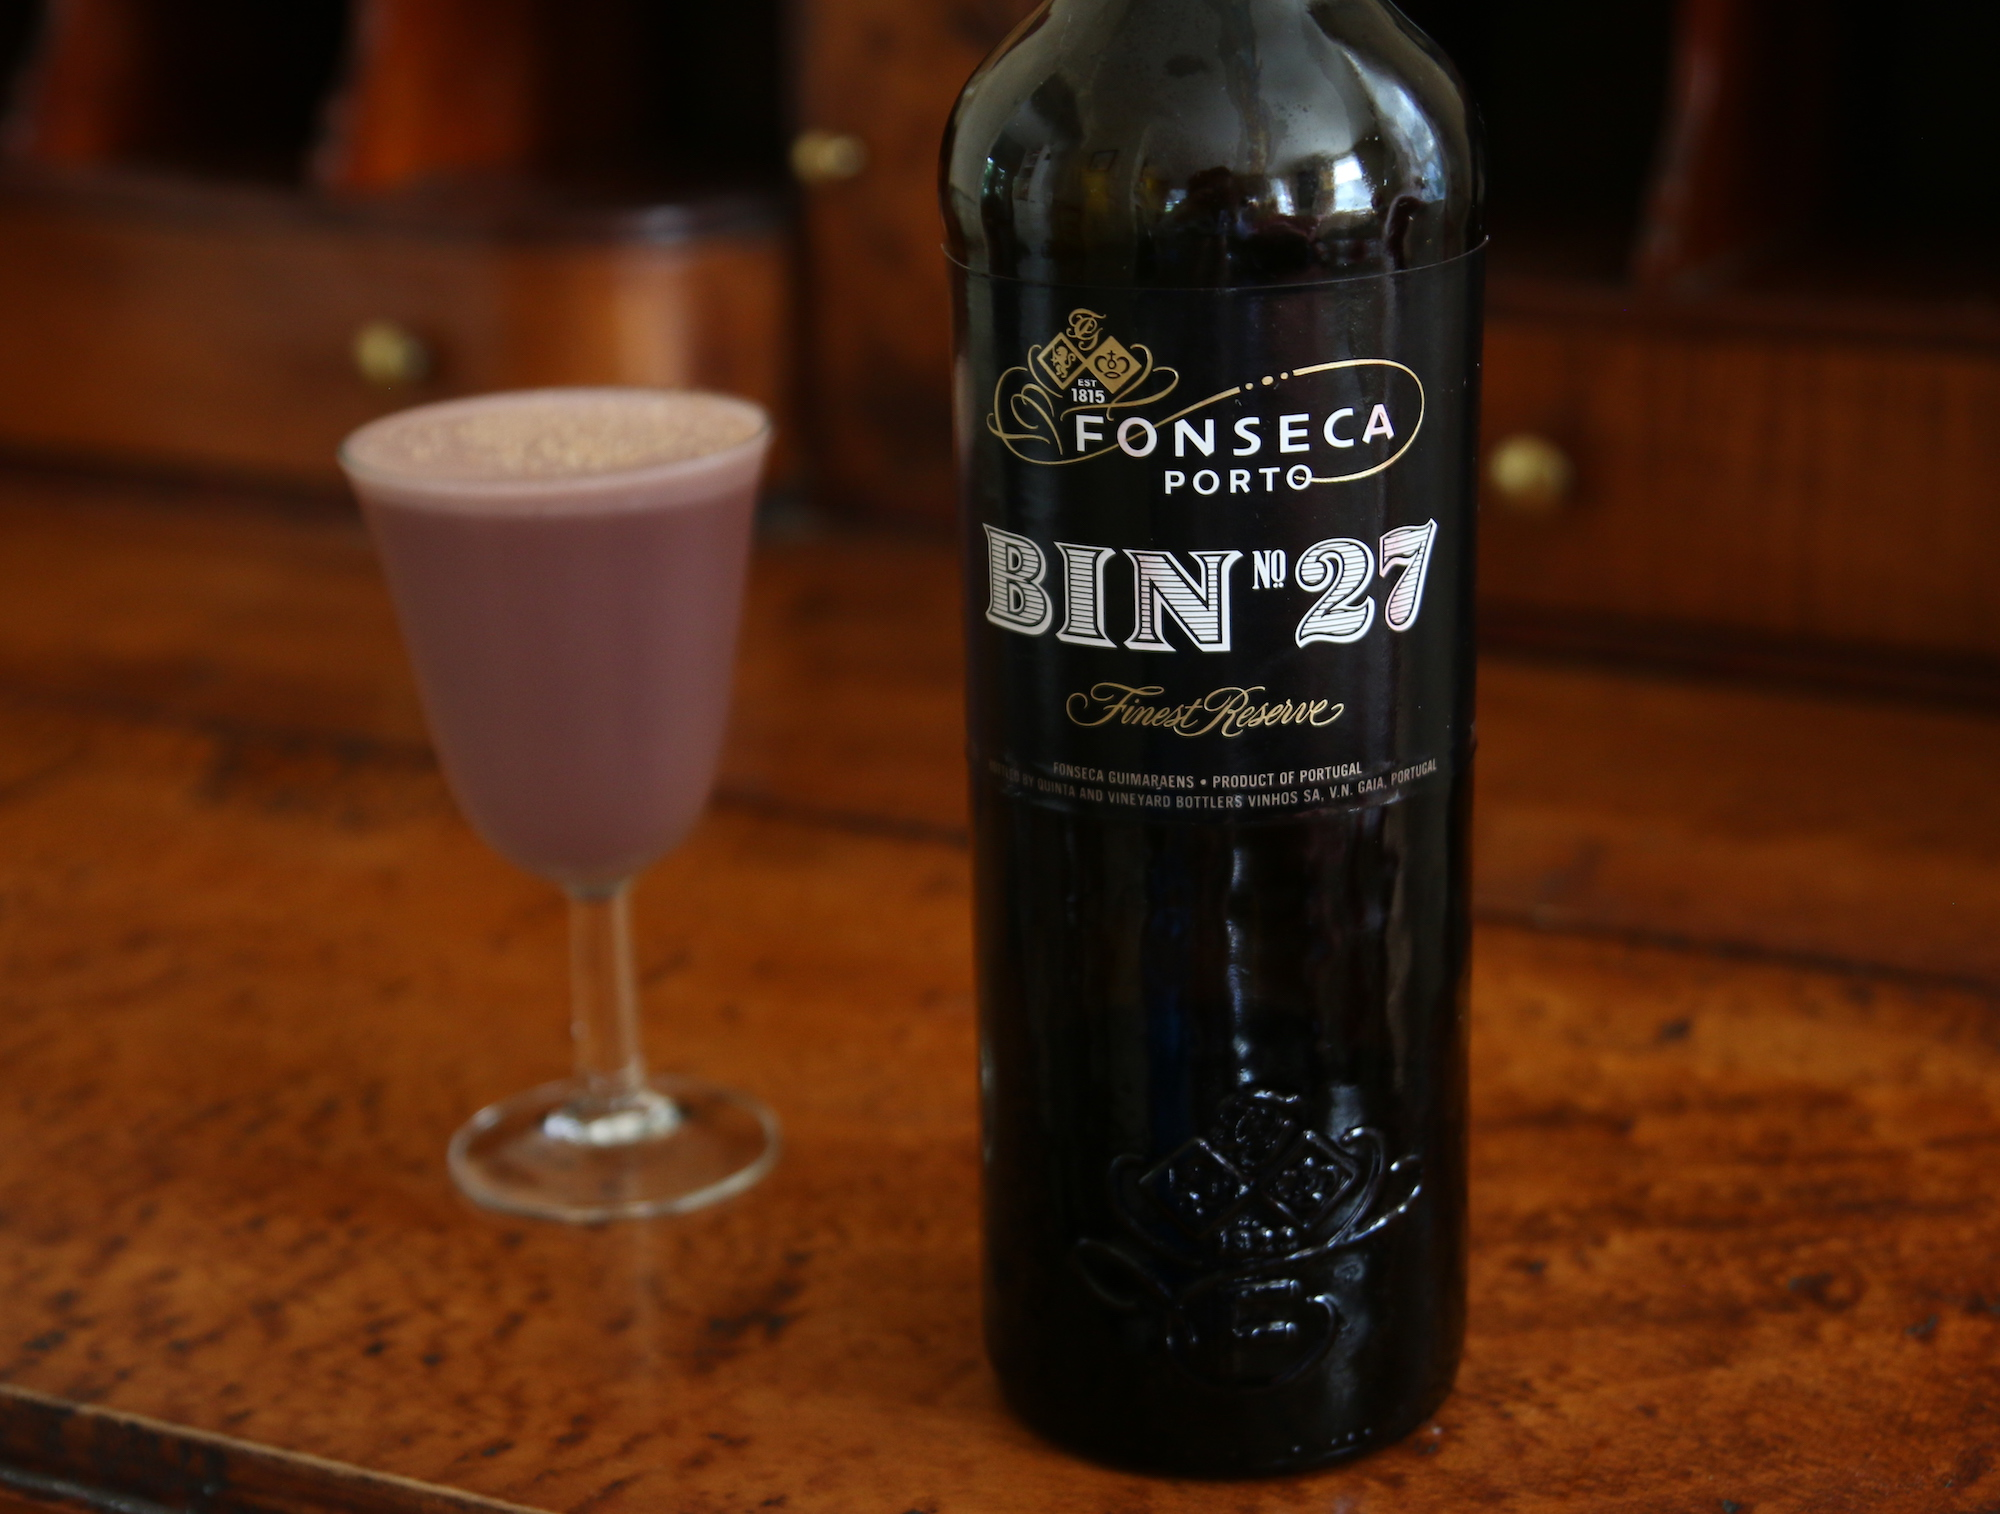 3 Ruby Port Cocktail Recipes for Every Level of Port Connoisseur